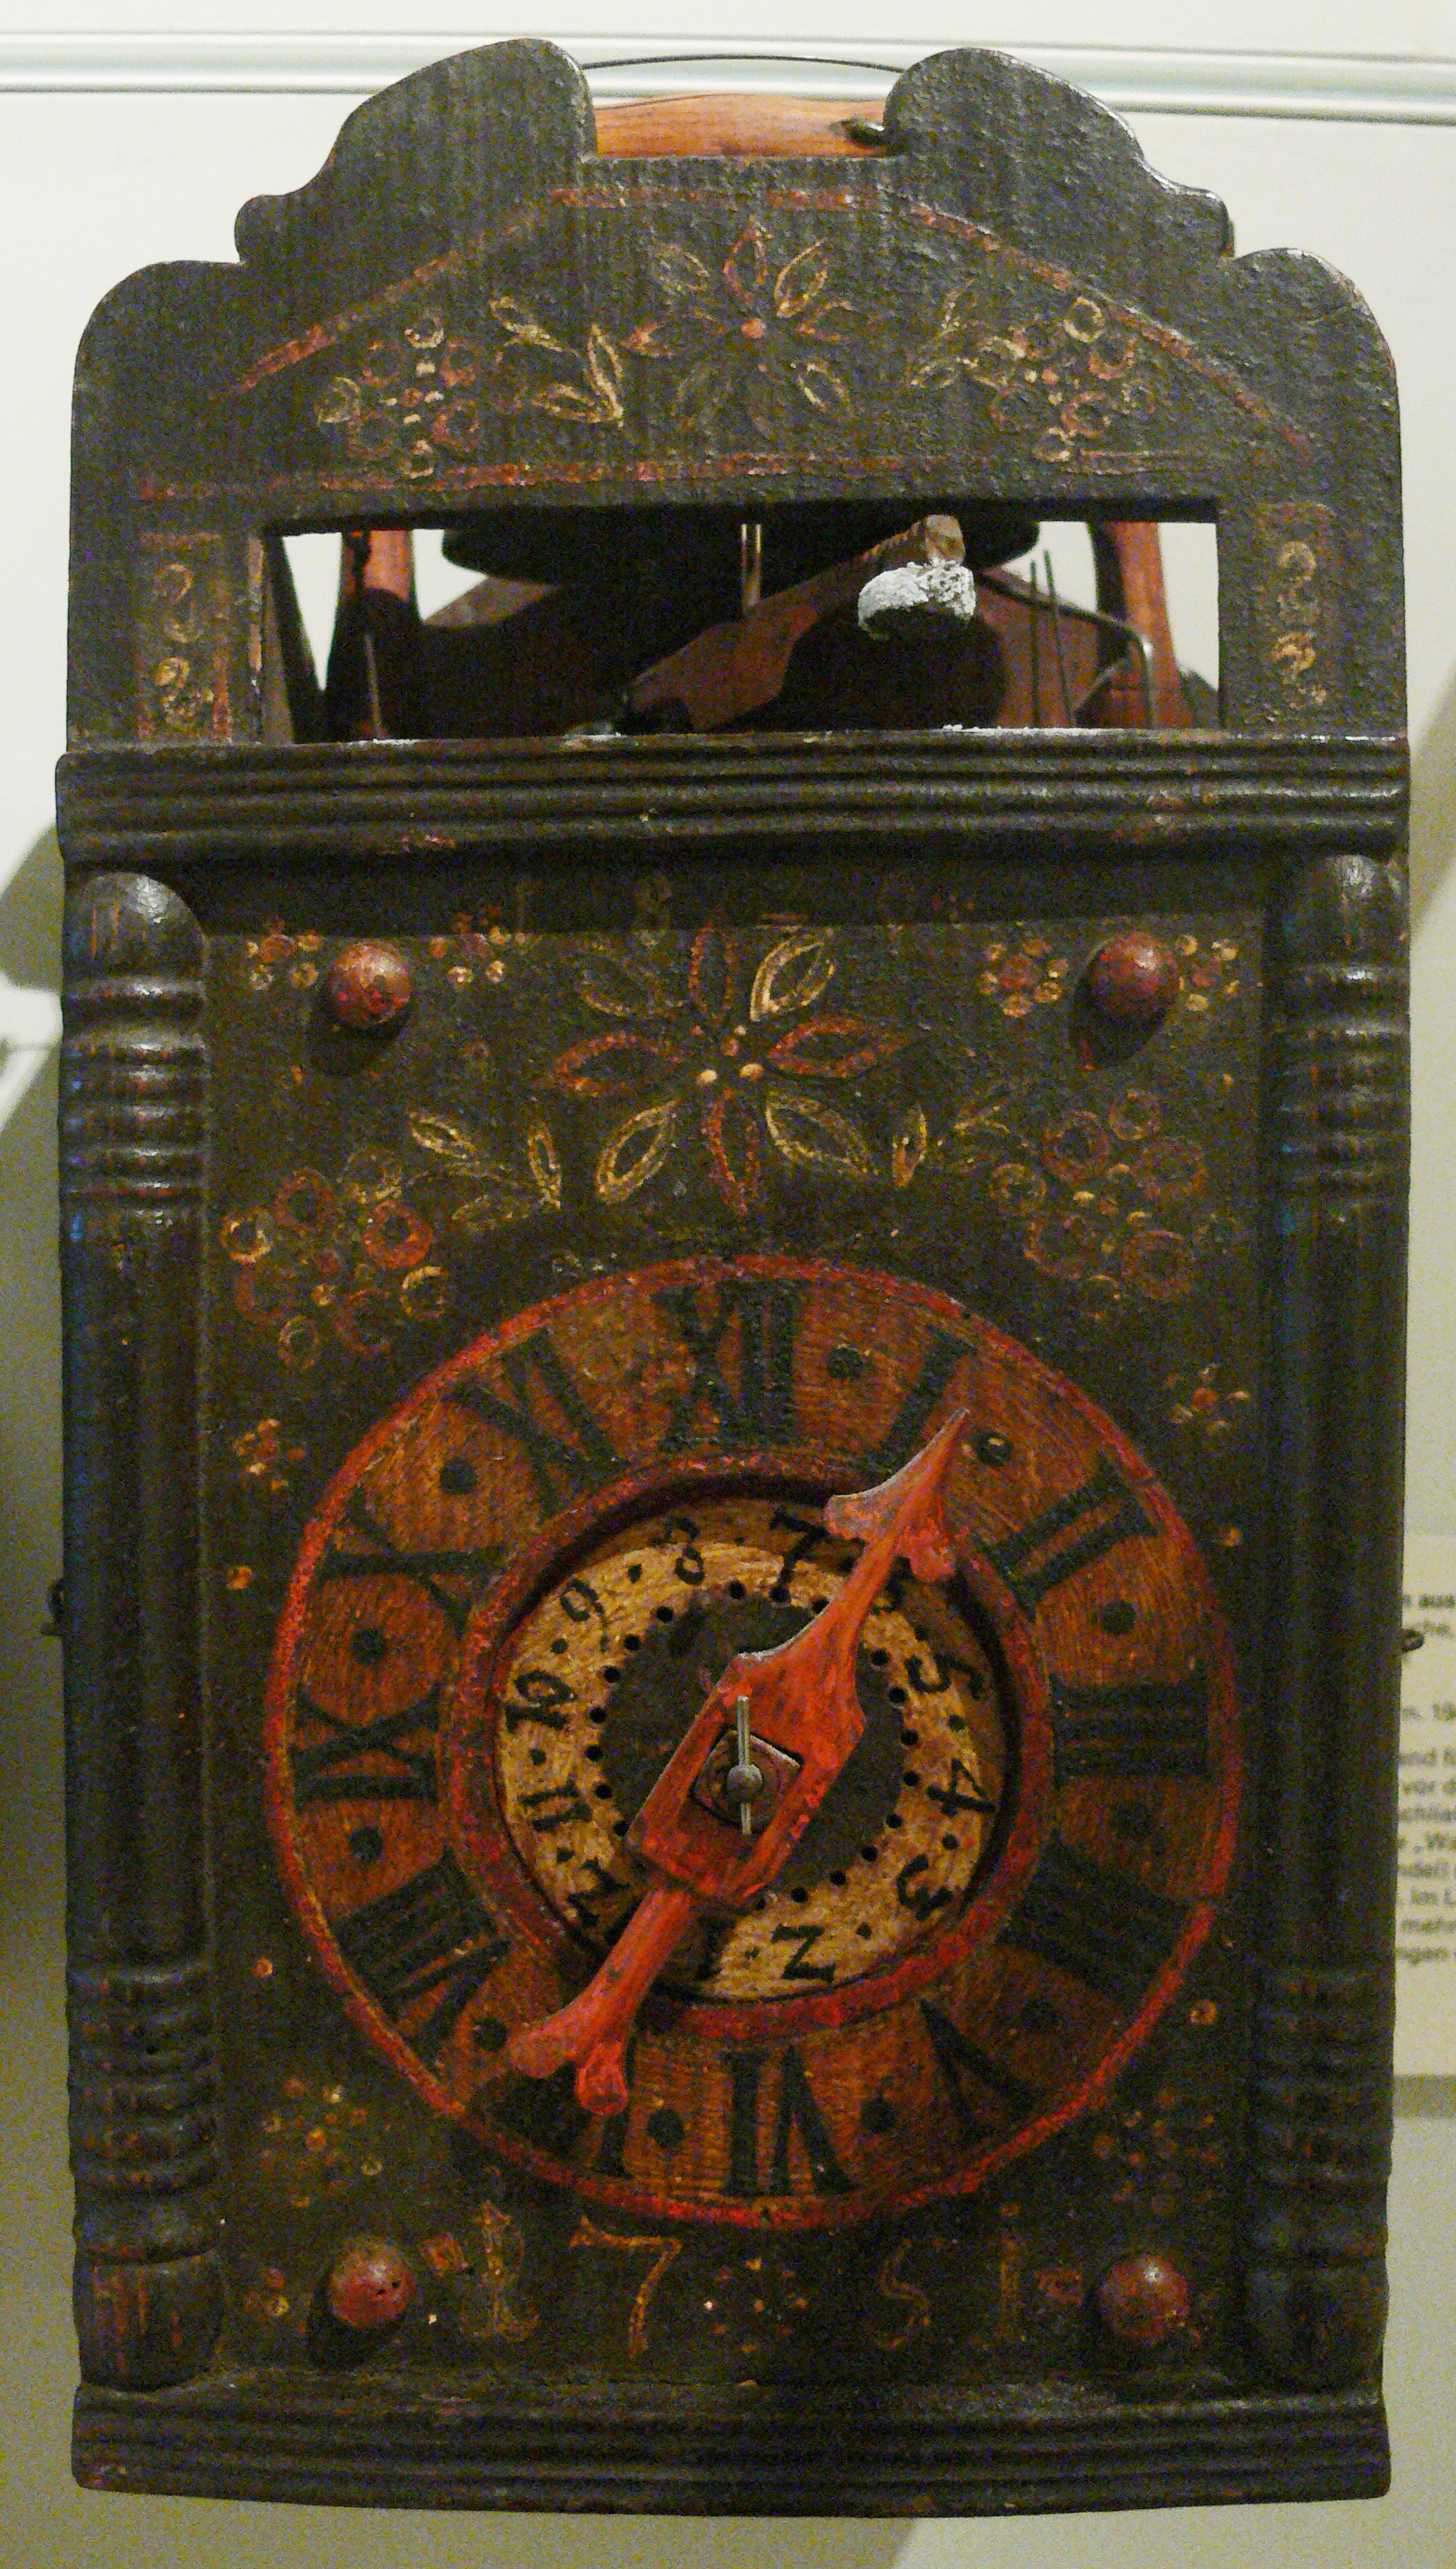 Black Forest Cuckoo clock from 1751. Landesmuseum Württemberg by Wikimedia